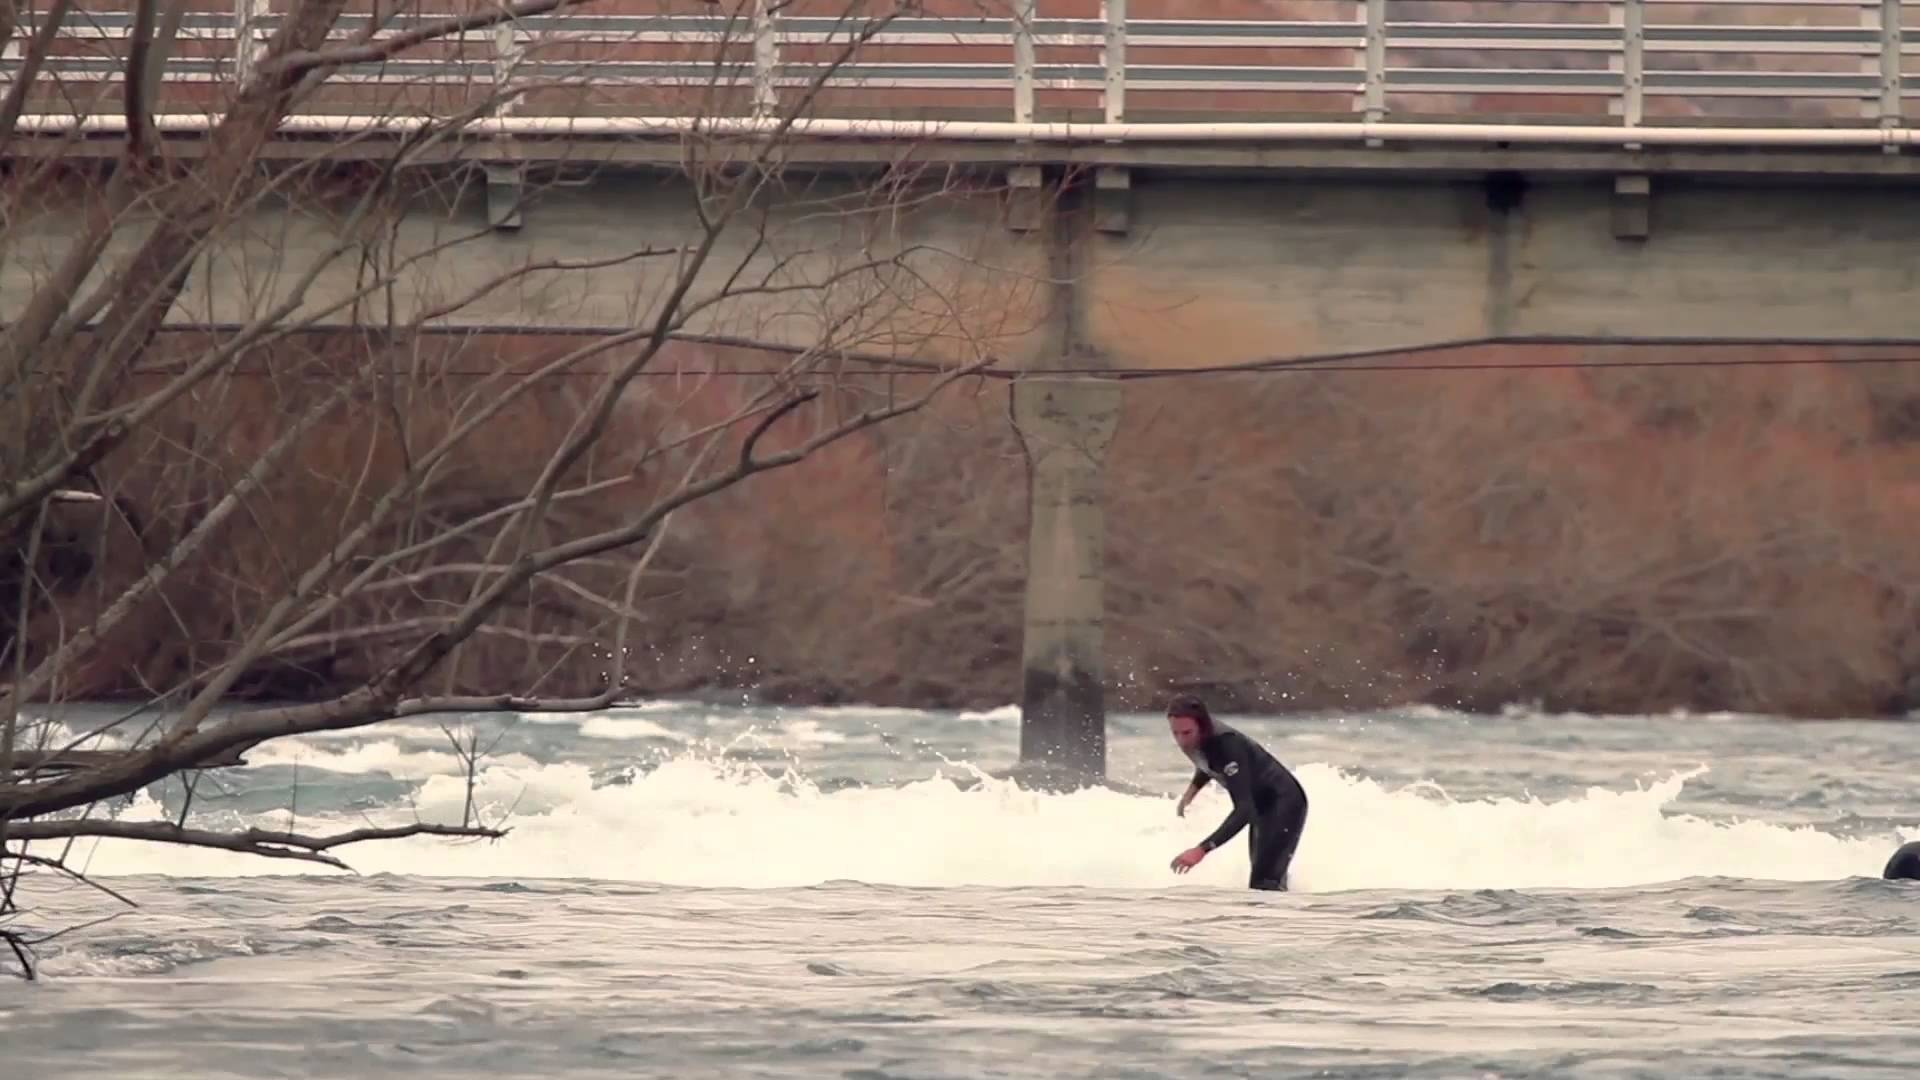 river wave surfing